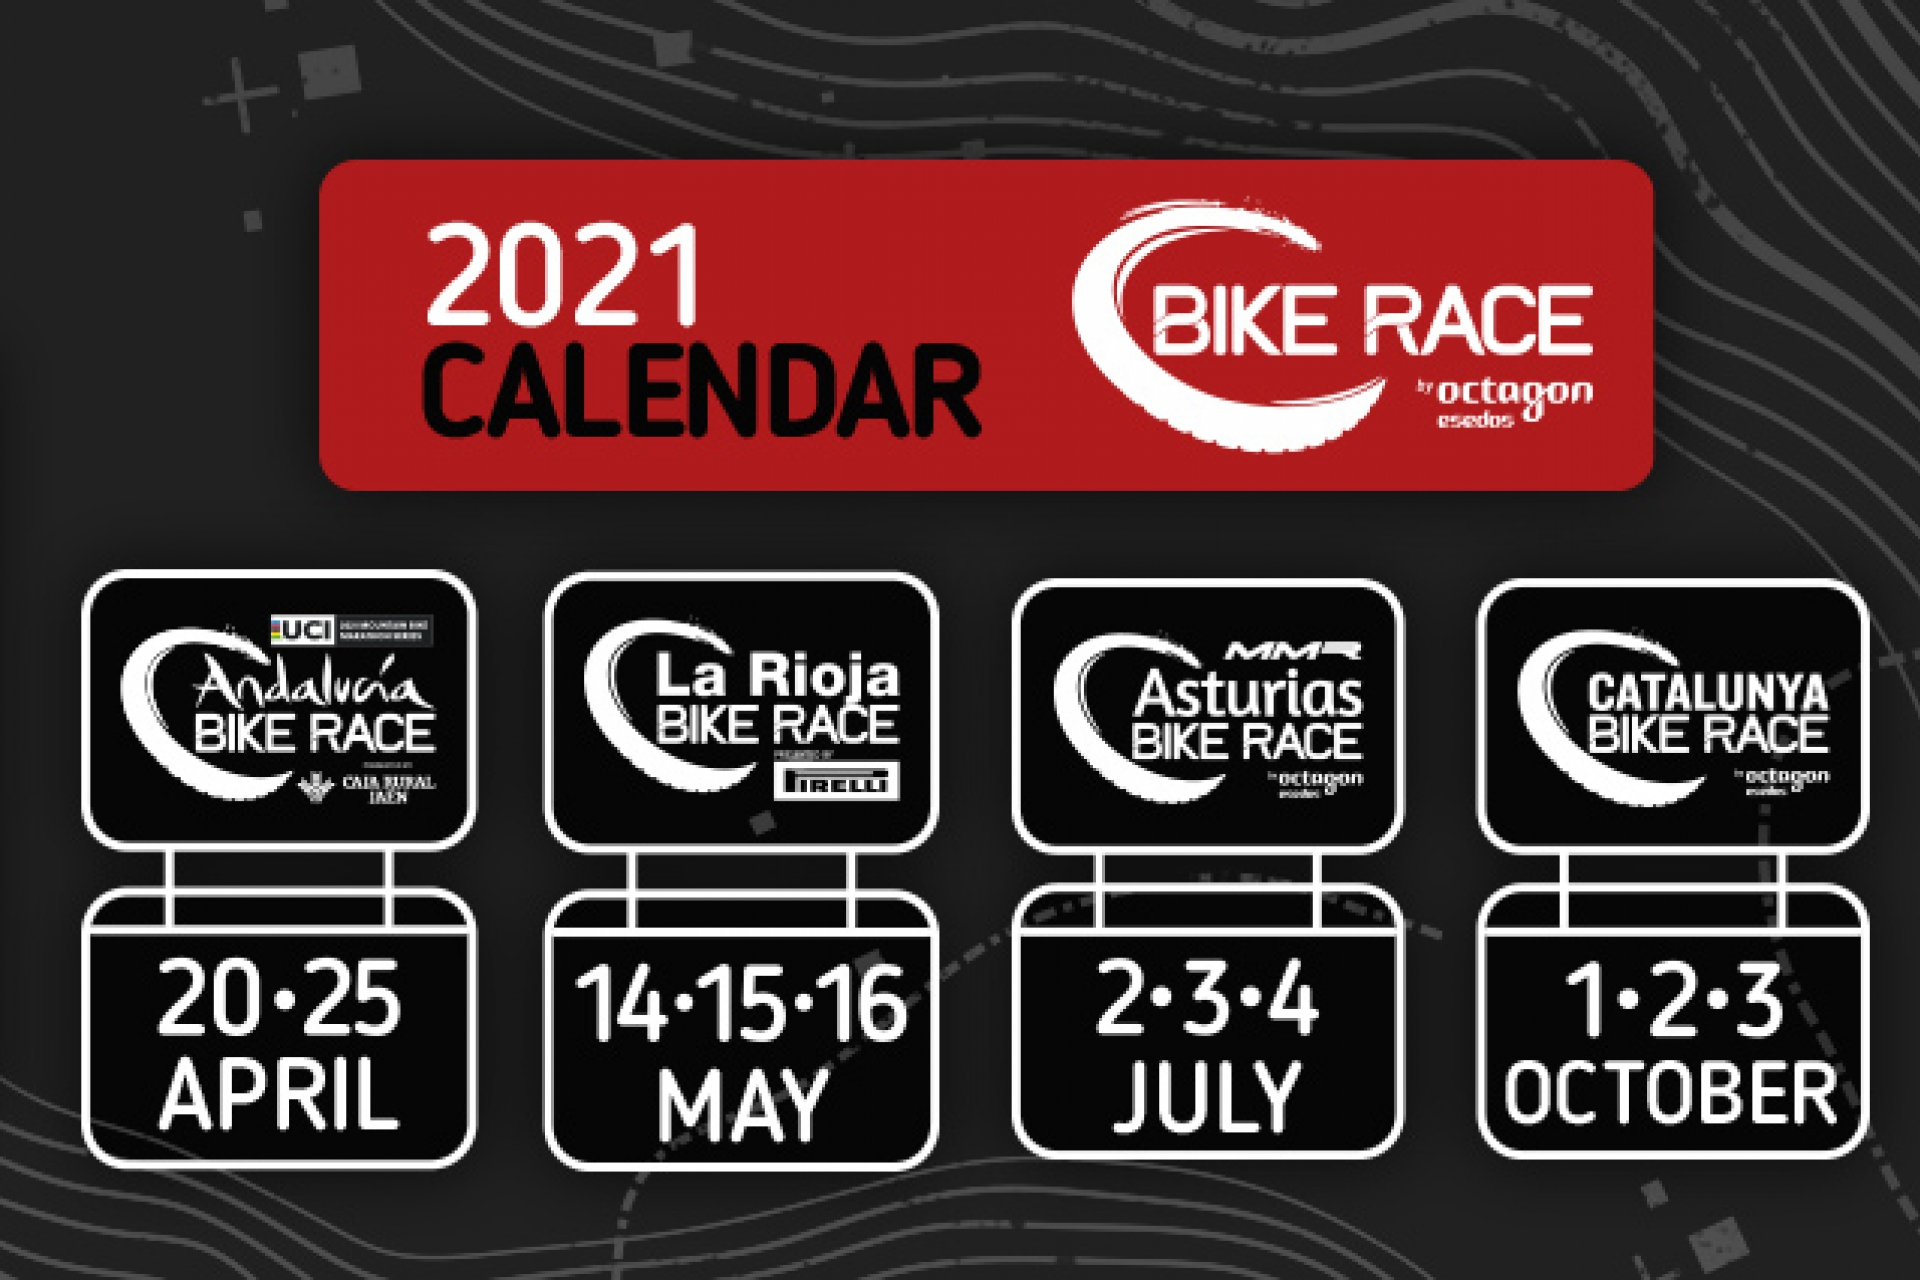 Introducing the Bike Race by Octagon Esedos Mountain Bike stage races calendar for 2021